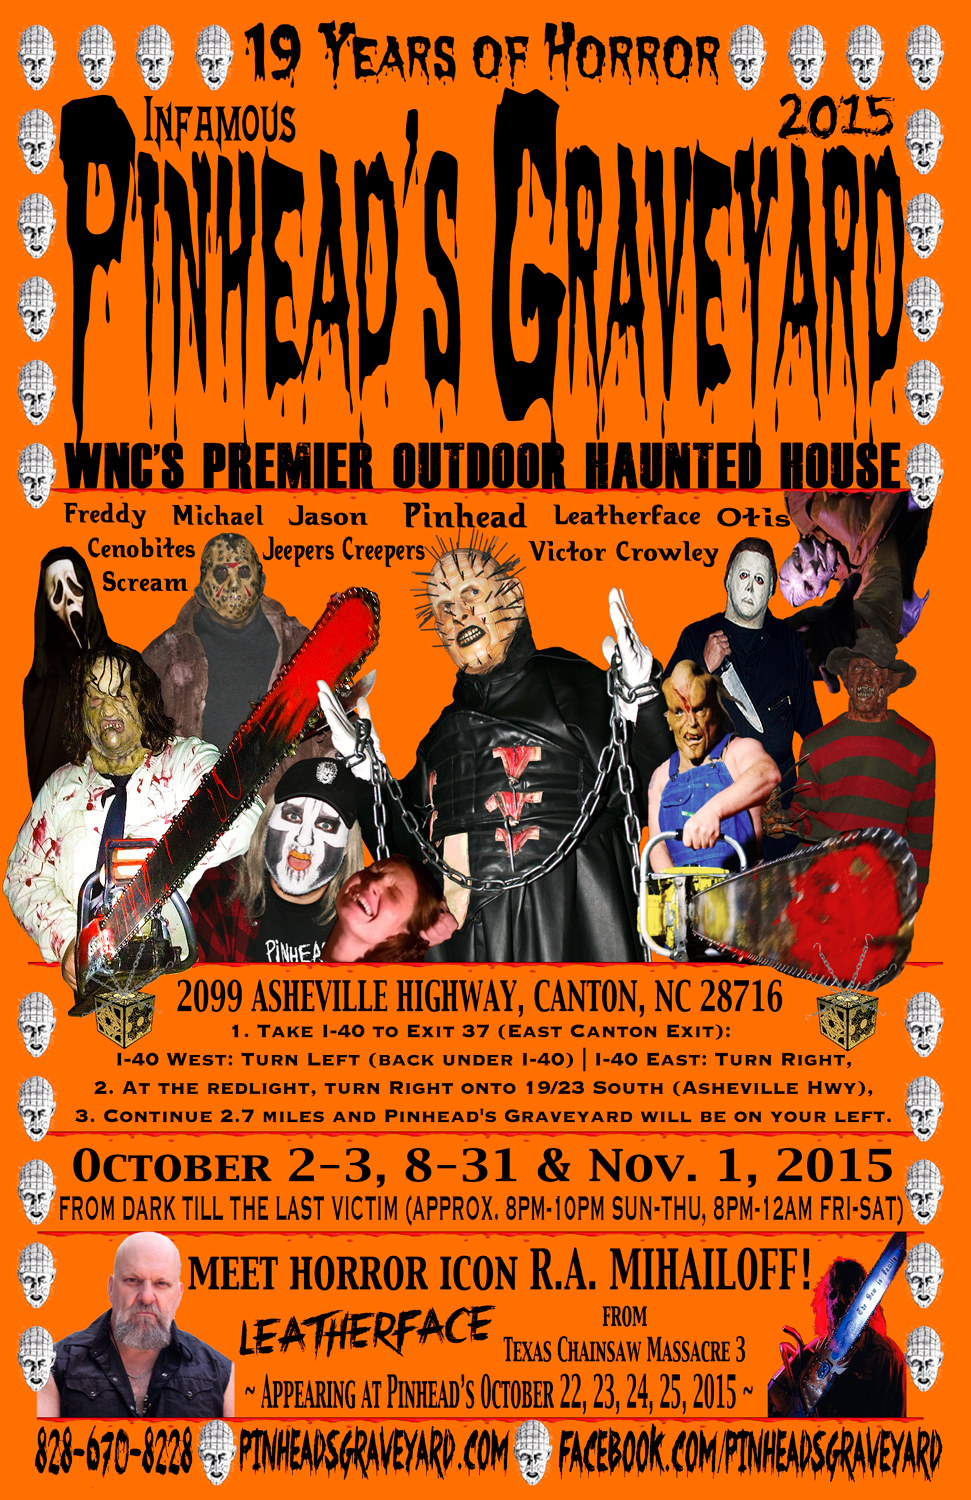 pinhead's graveyard 2015 flyer - premier haunted house | asheville